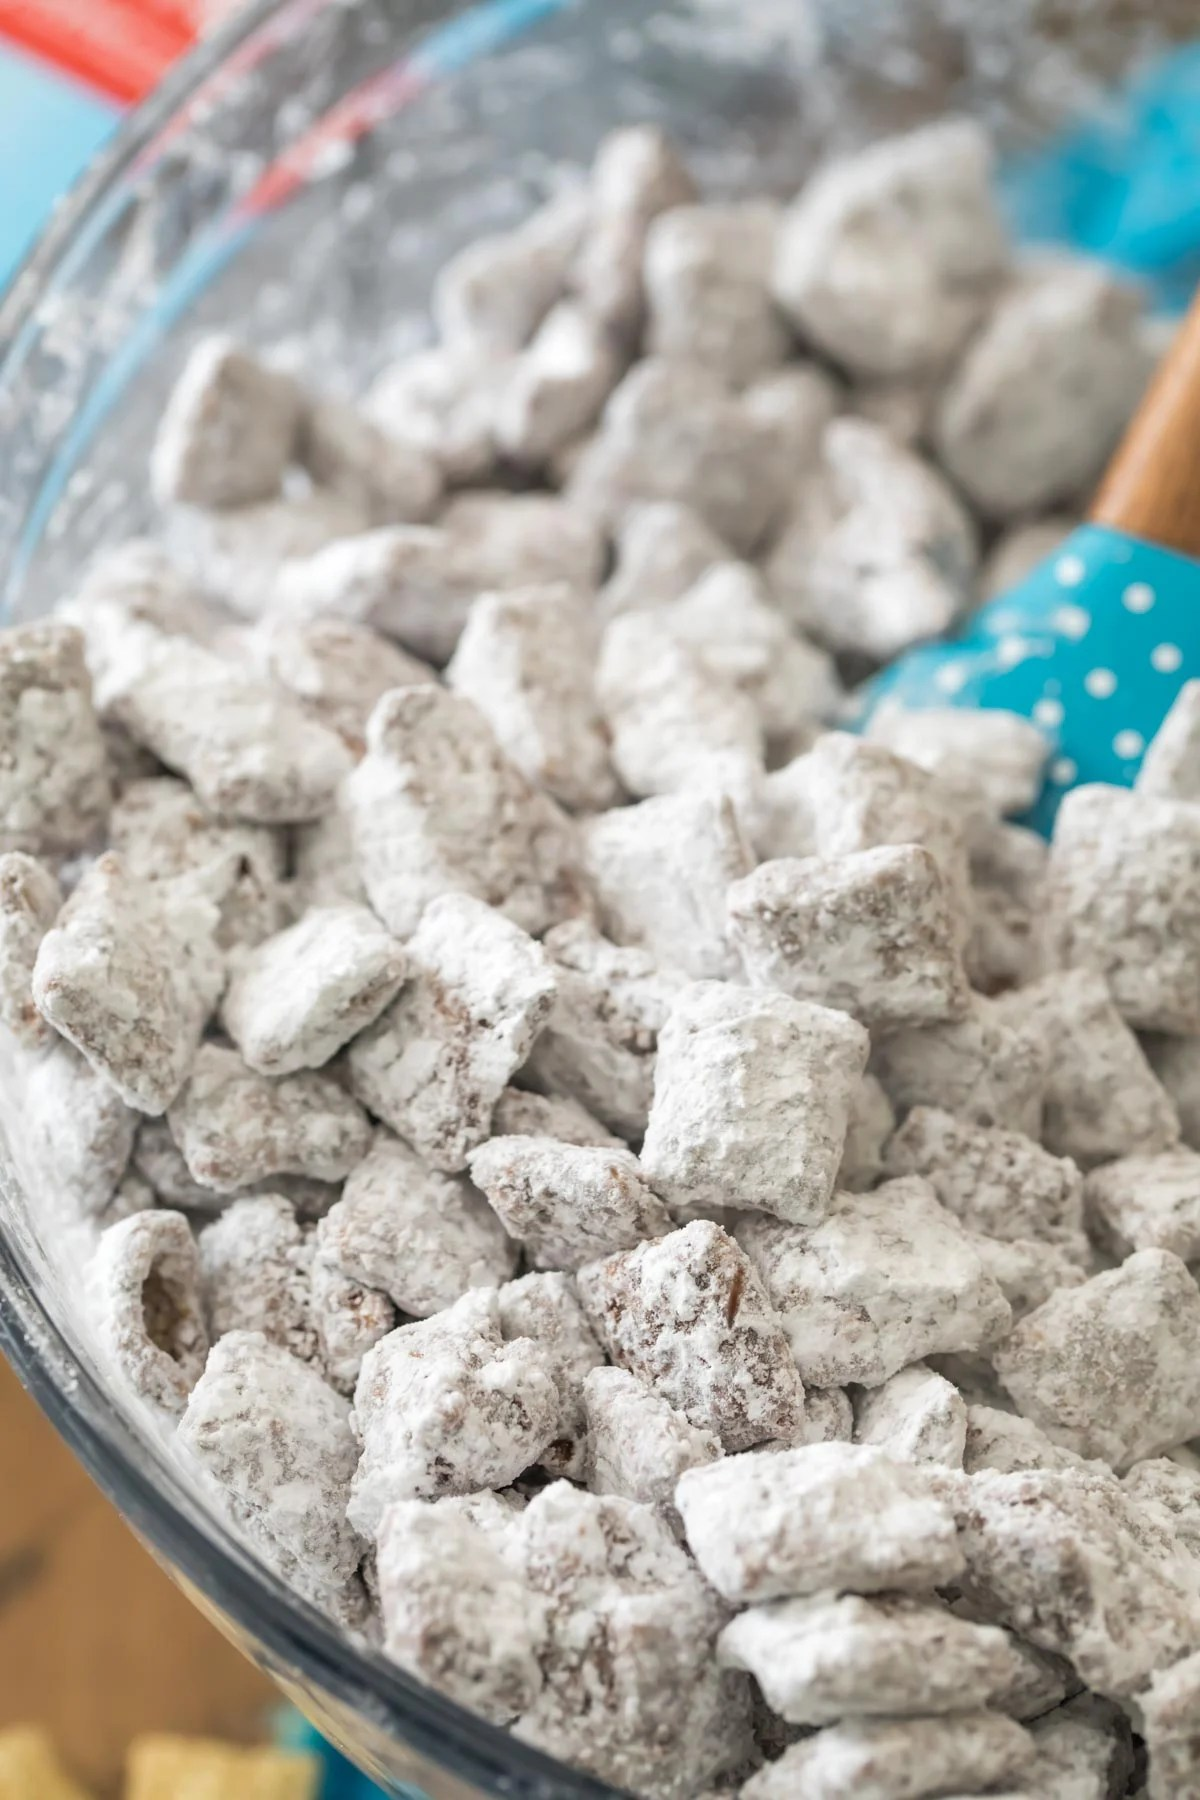 stirring powdered sugar over chocolate coated cereal